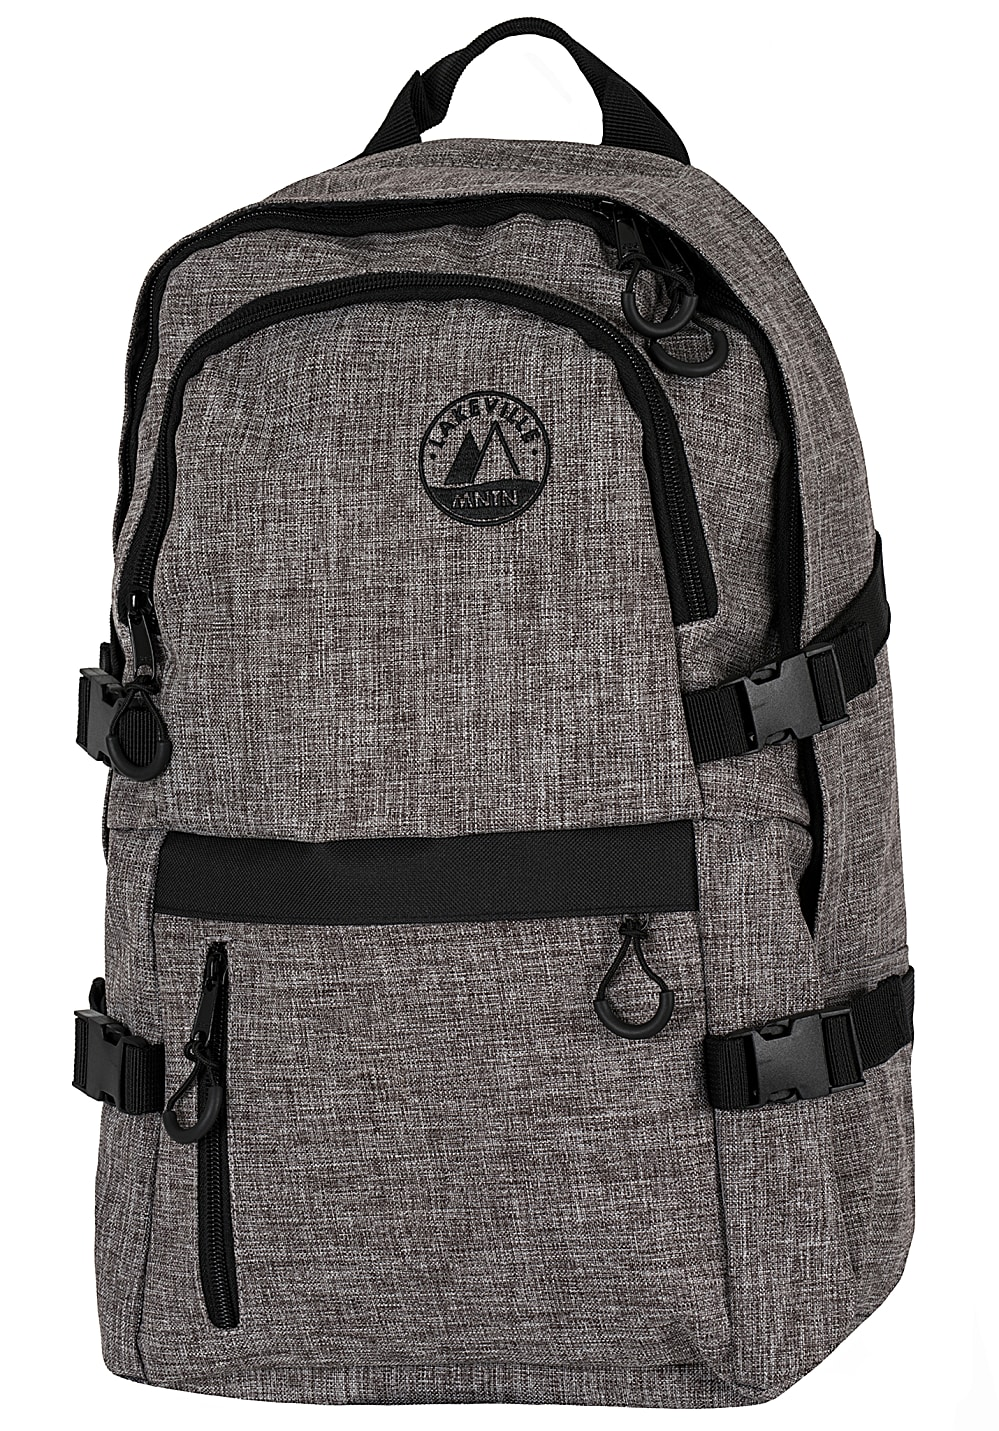 Lakeville Mountain Bakili Laptoprucksack Grau